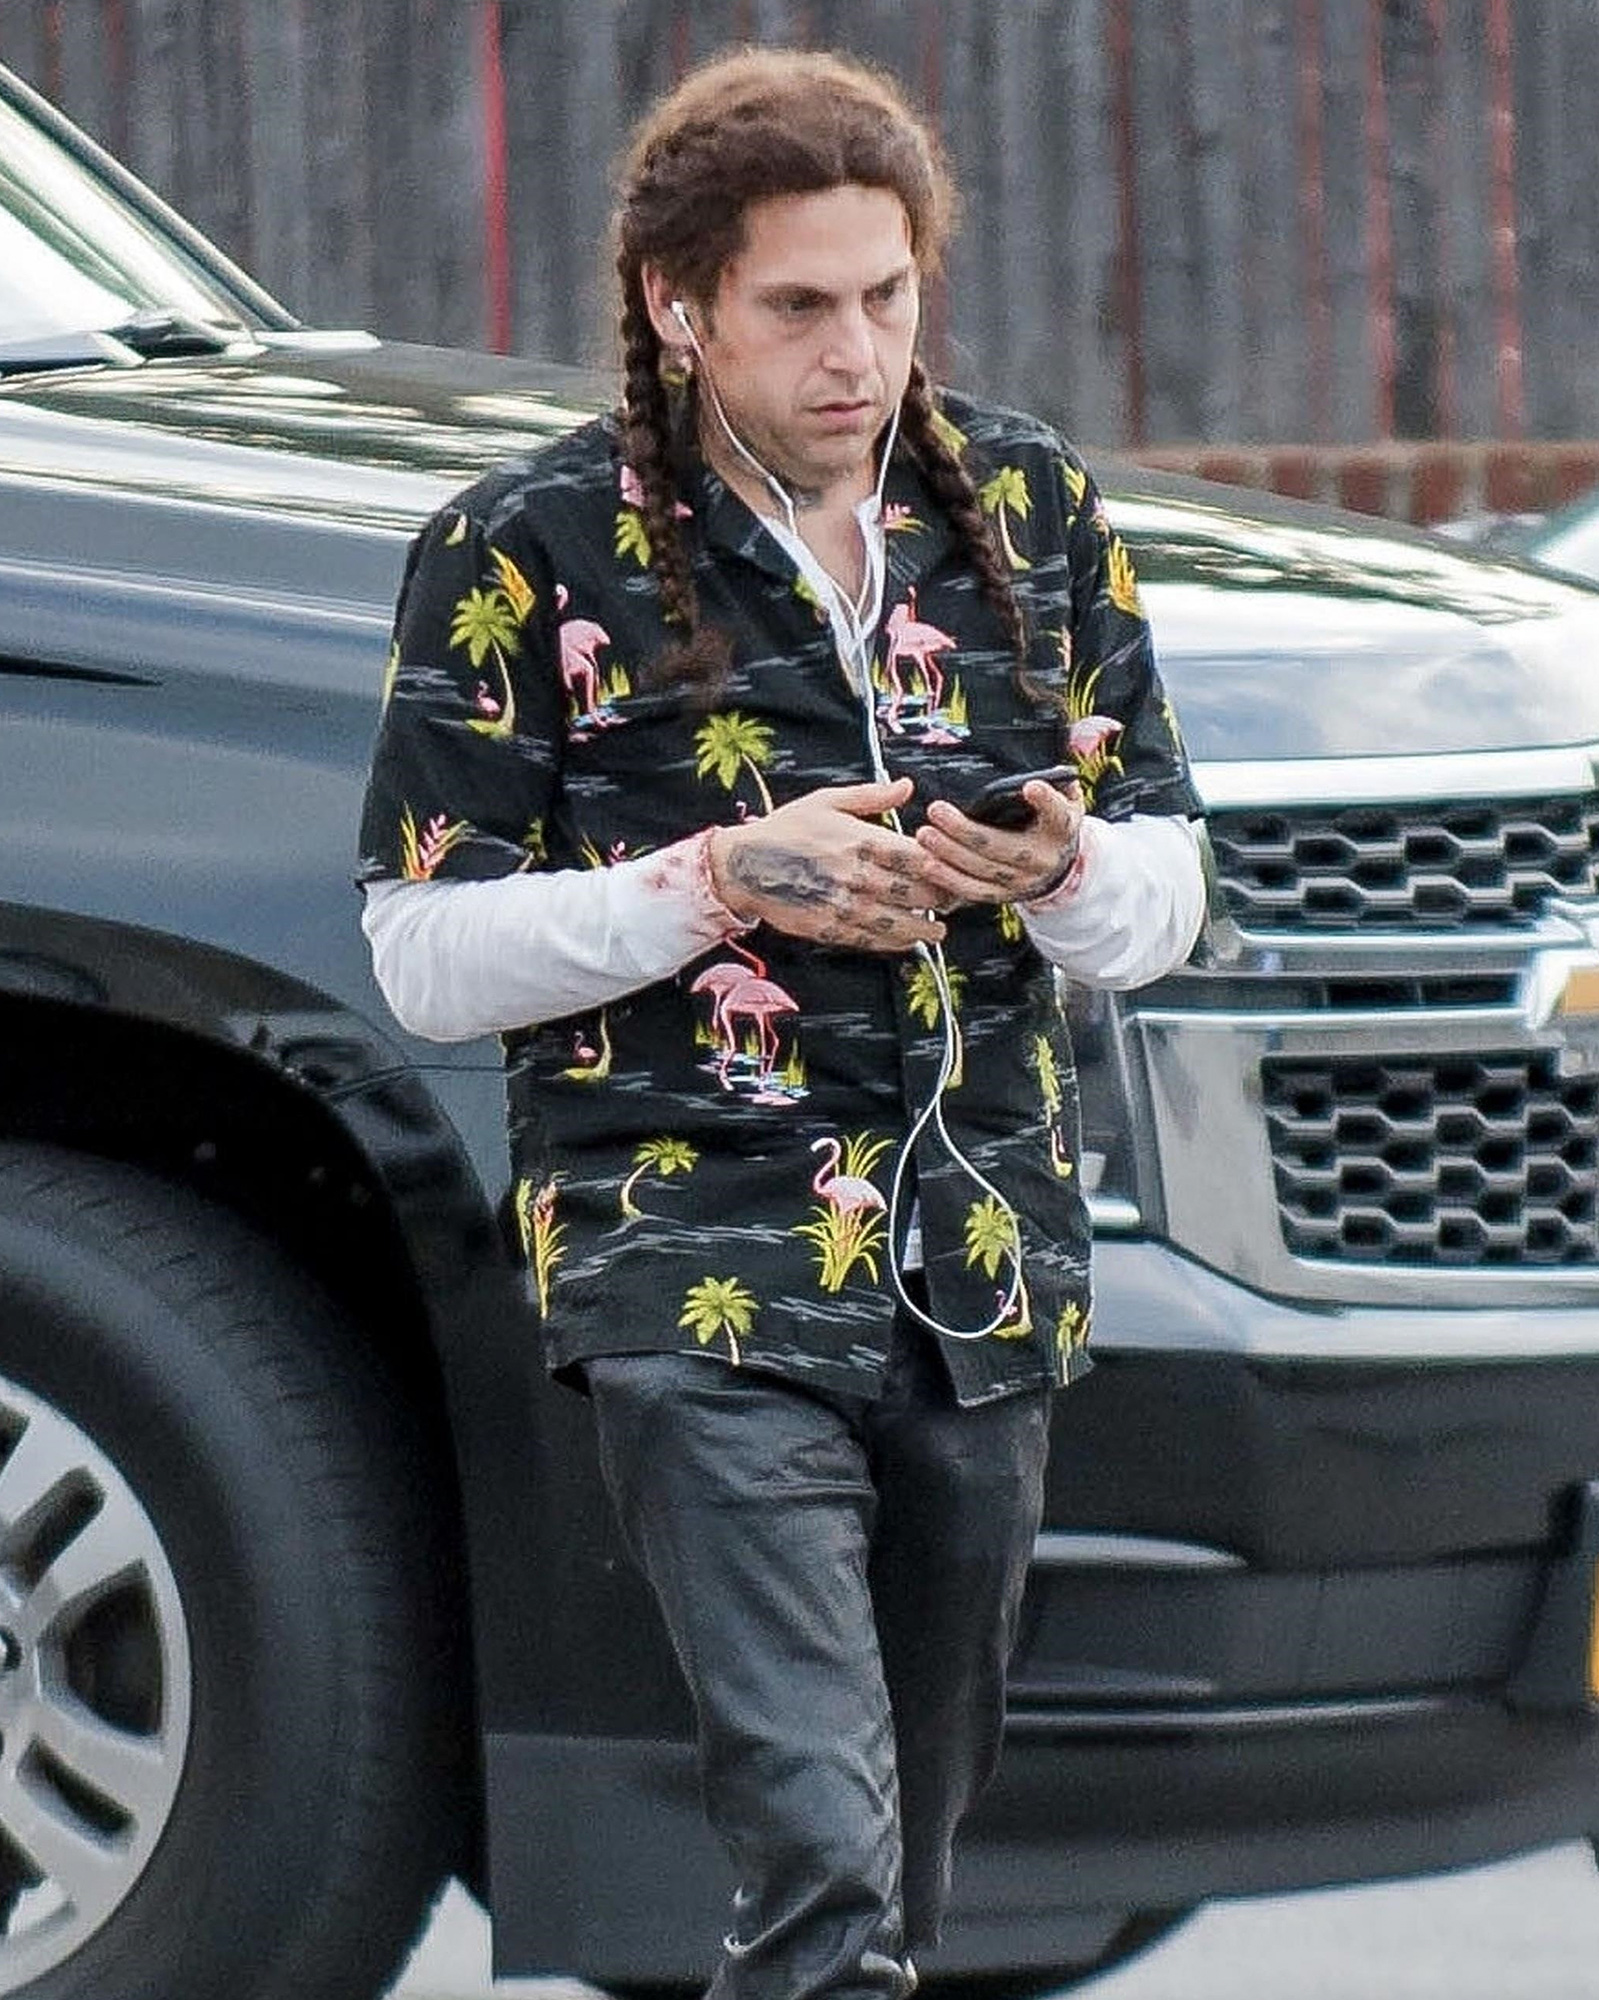 *EXCLUSIVE* Jonah Hill rocks braids and tattoos on the set of 'Maniac'